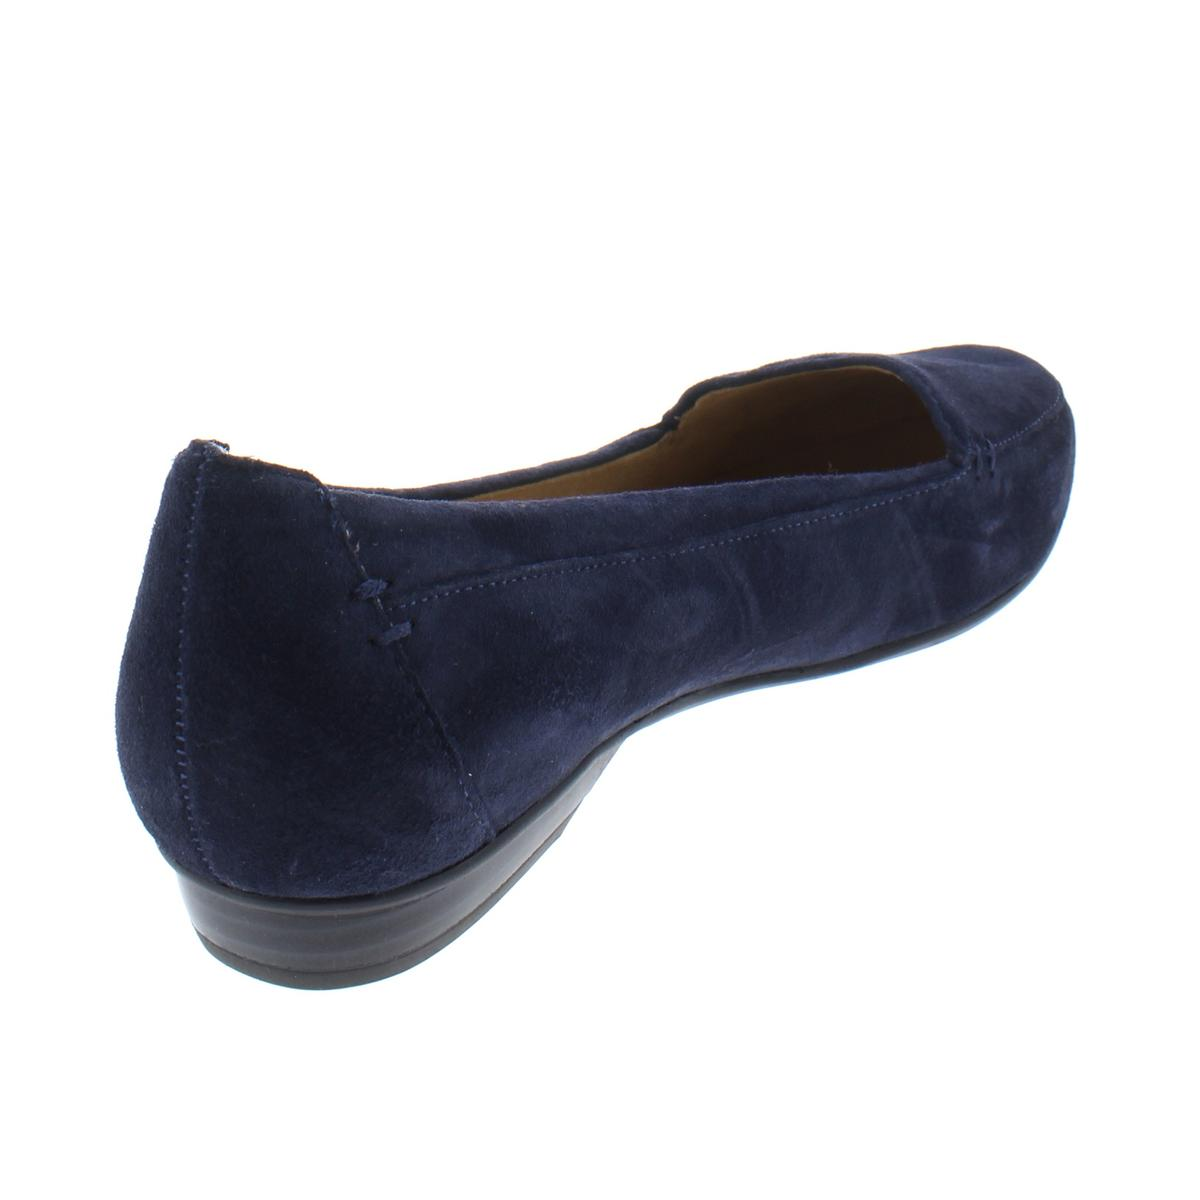 Naturalizer-Womens-Saban-Solid-Round-Toe-Casual-Loafers-Shoes-BHFO-1181 thumbnail 10